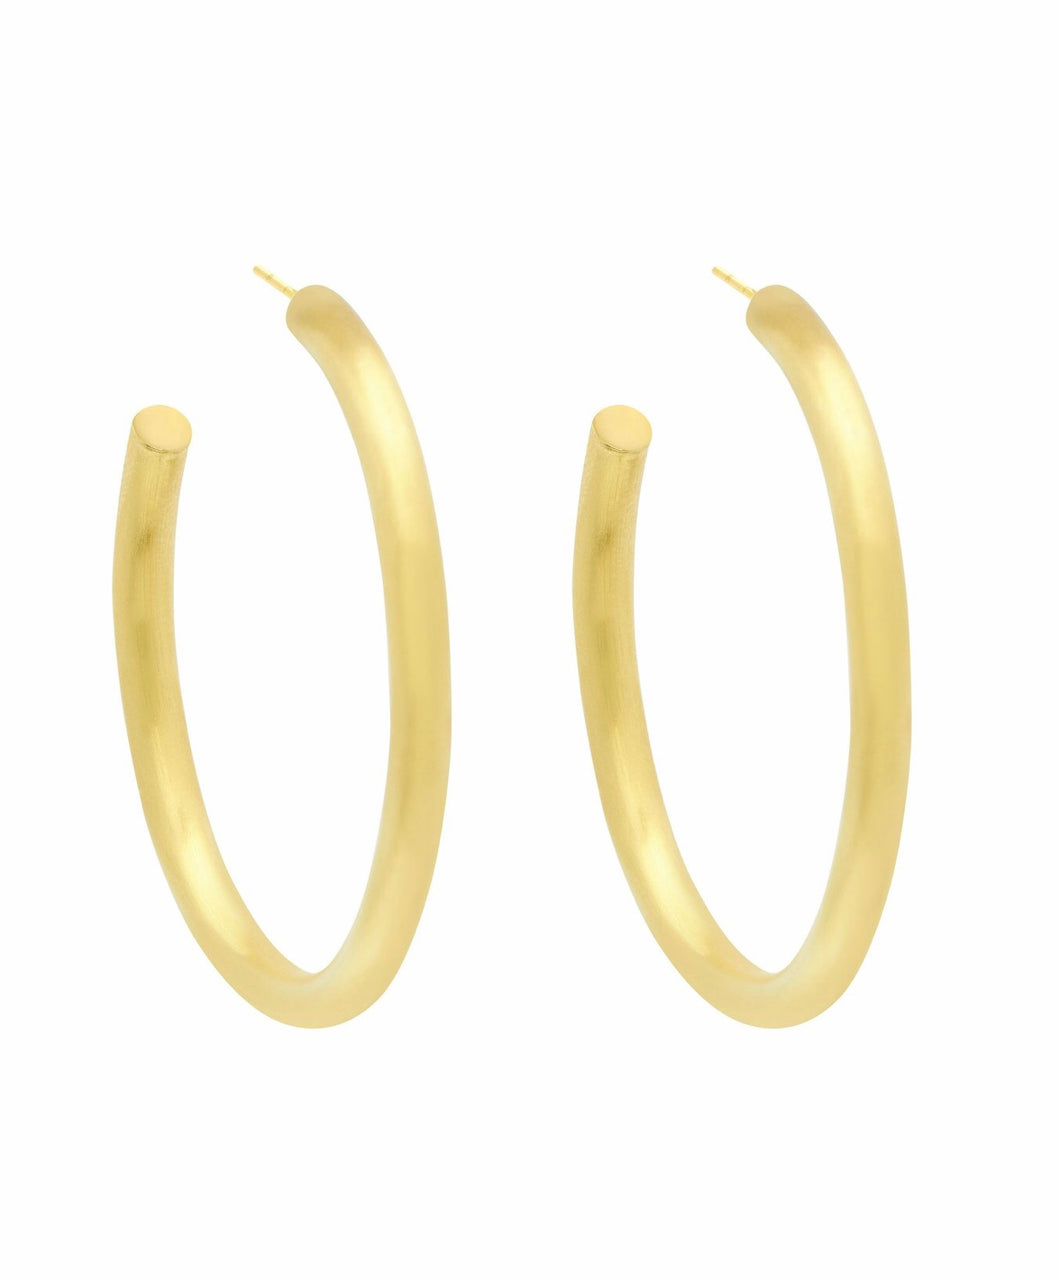 Dean Davidson Dune Hoop Earrings!